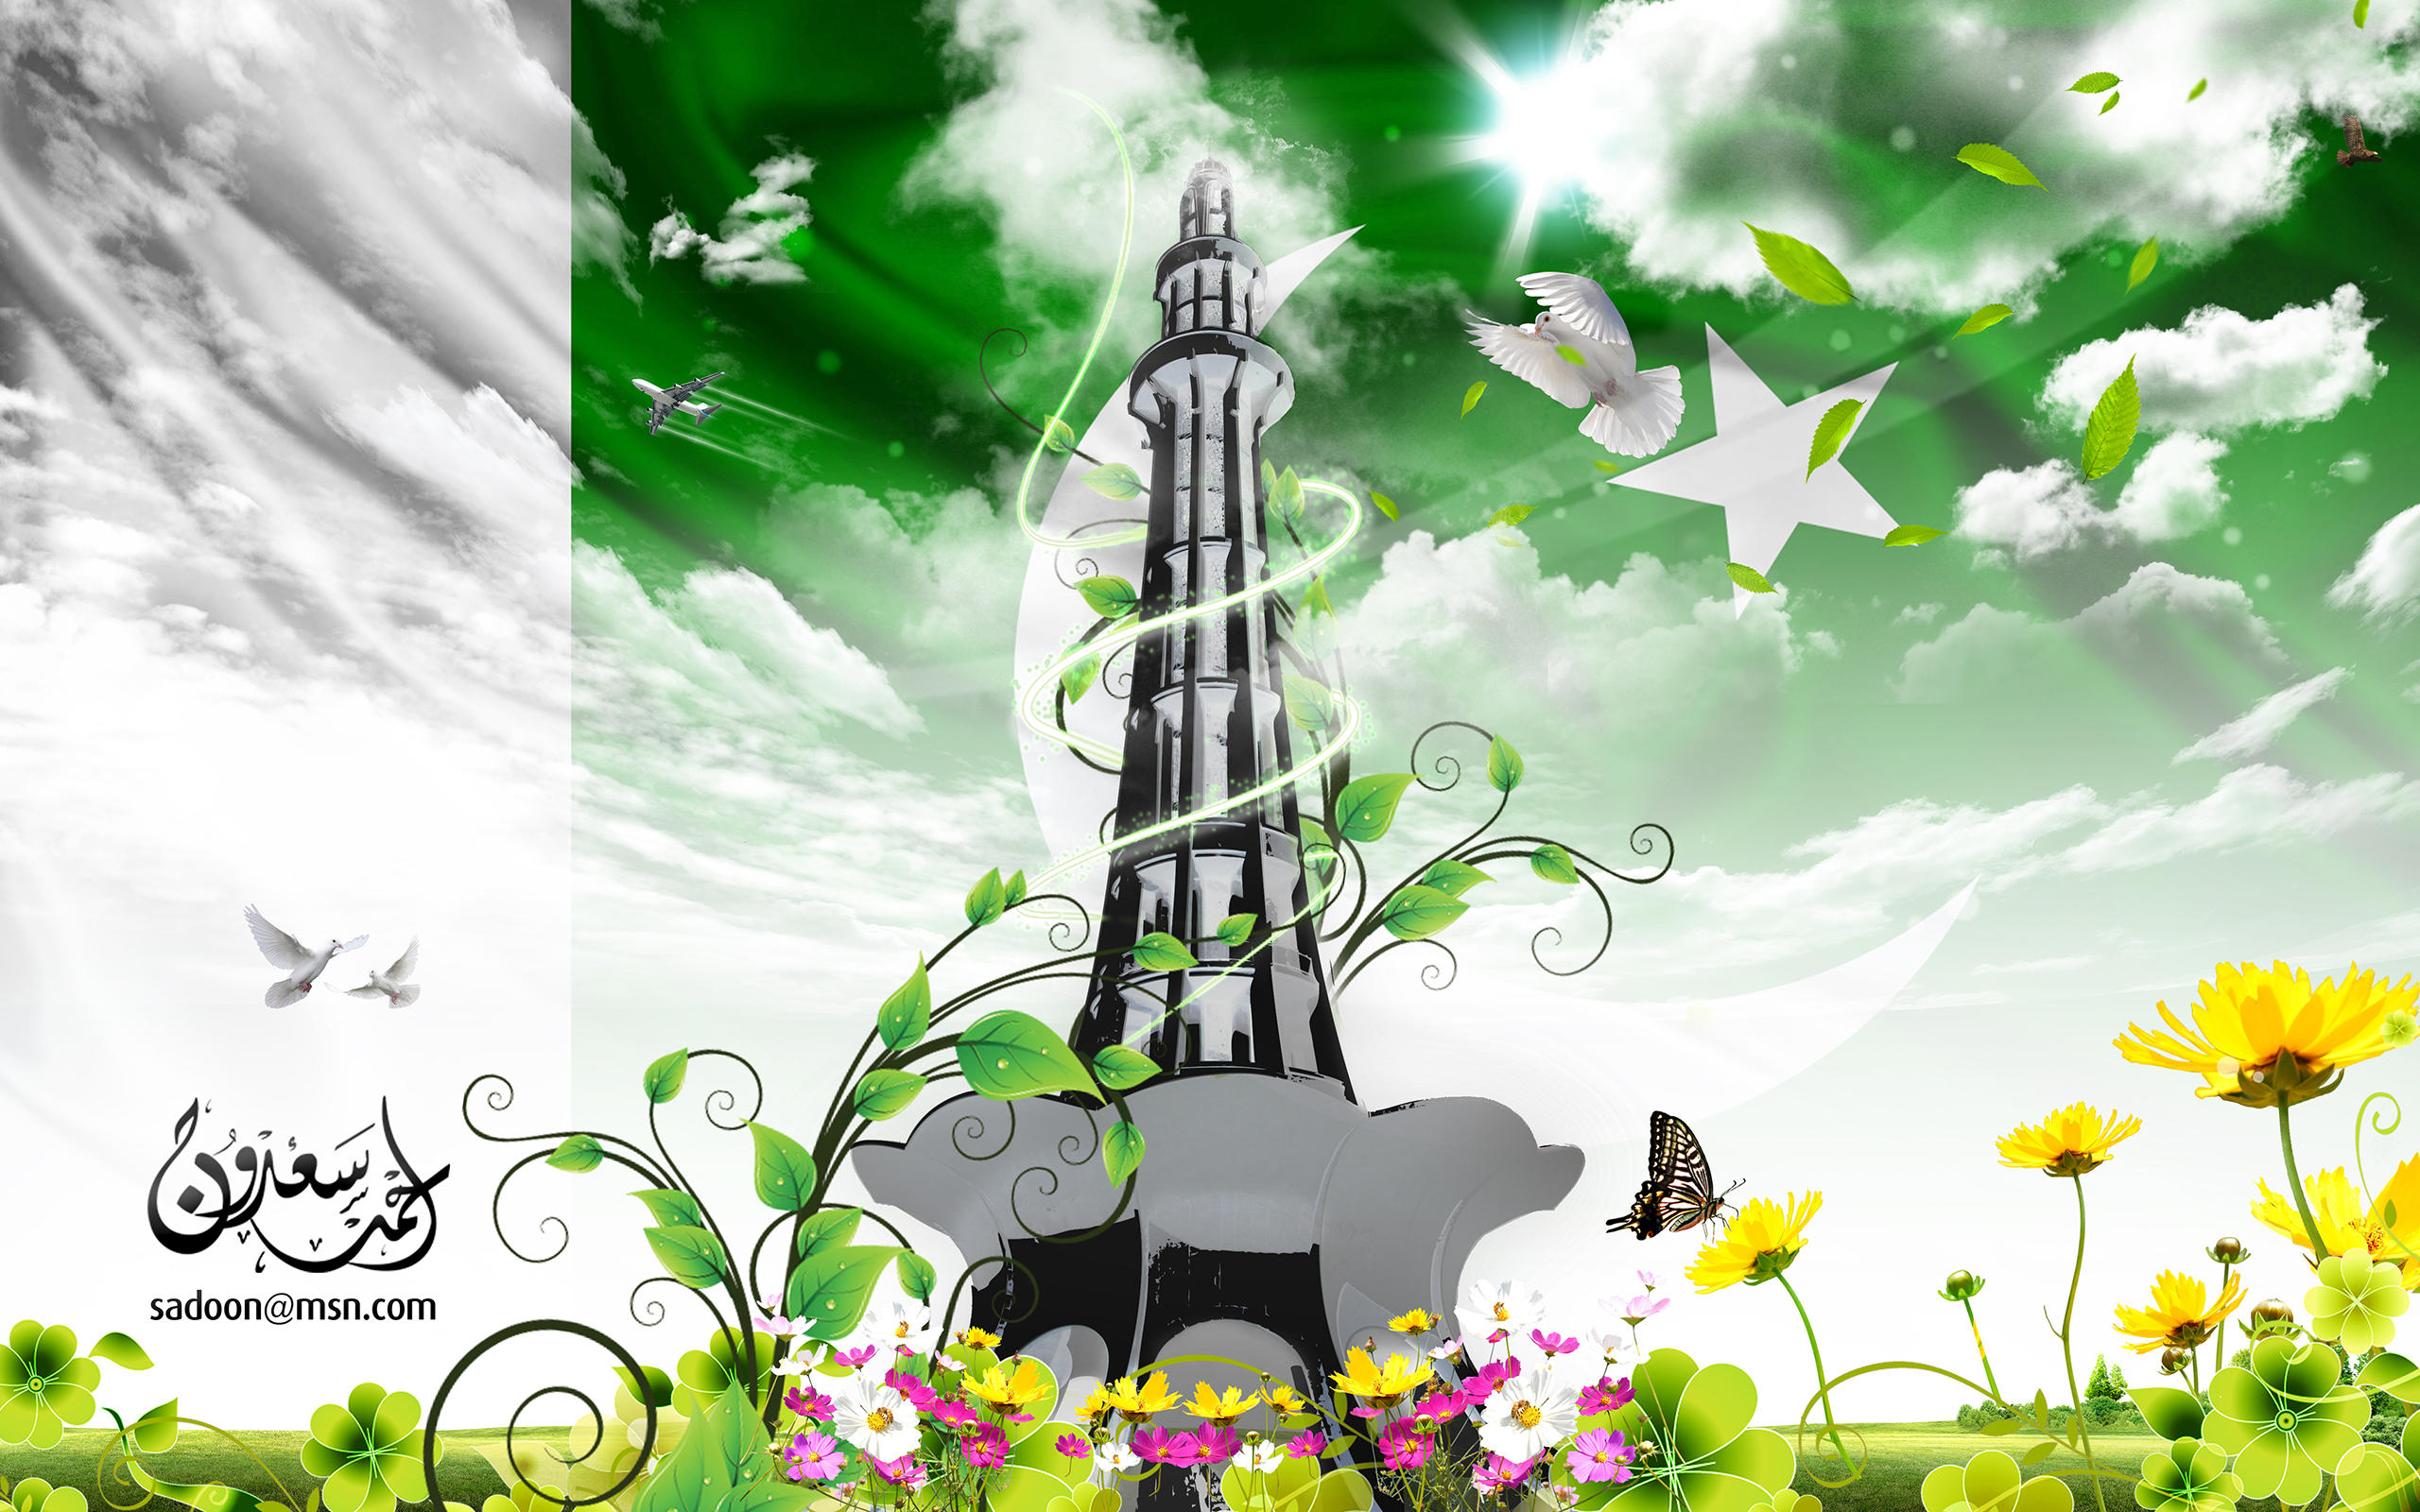 Love Wallpaper Hd Pk : Minar-e-Pakistan (With Pakistan Flag in Sky) by AhmedSadoon on DeviantArt